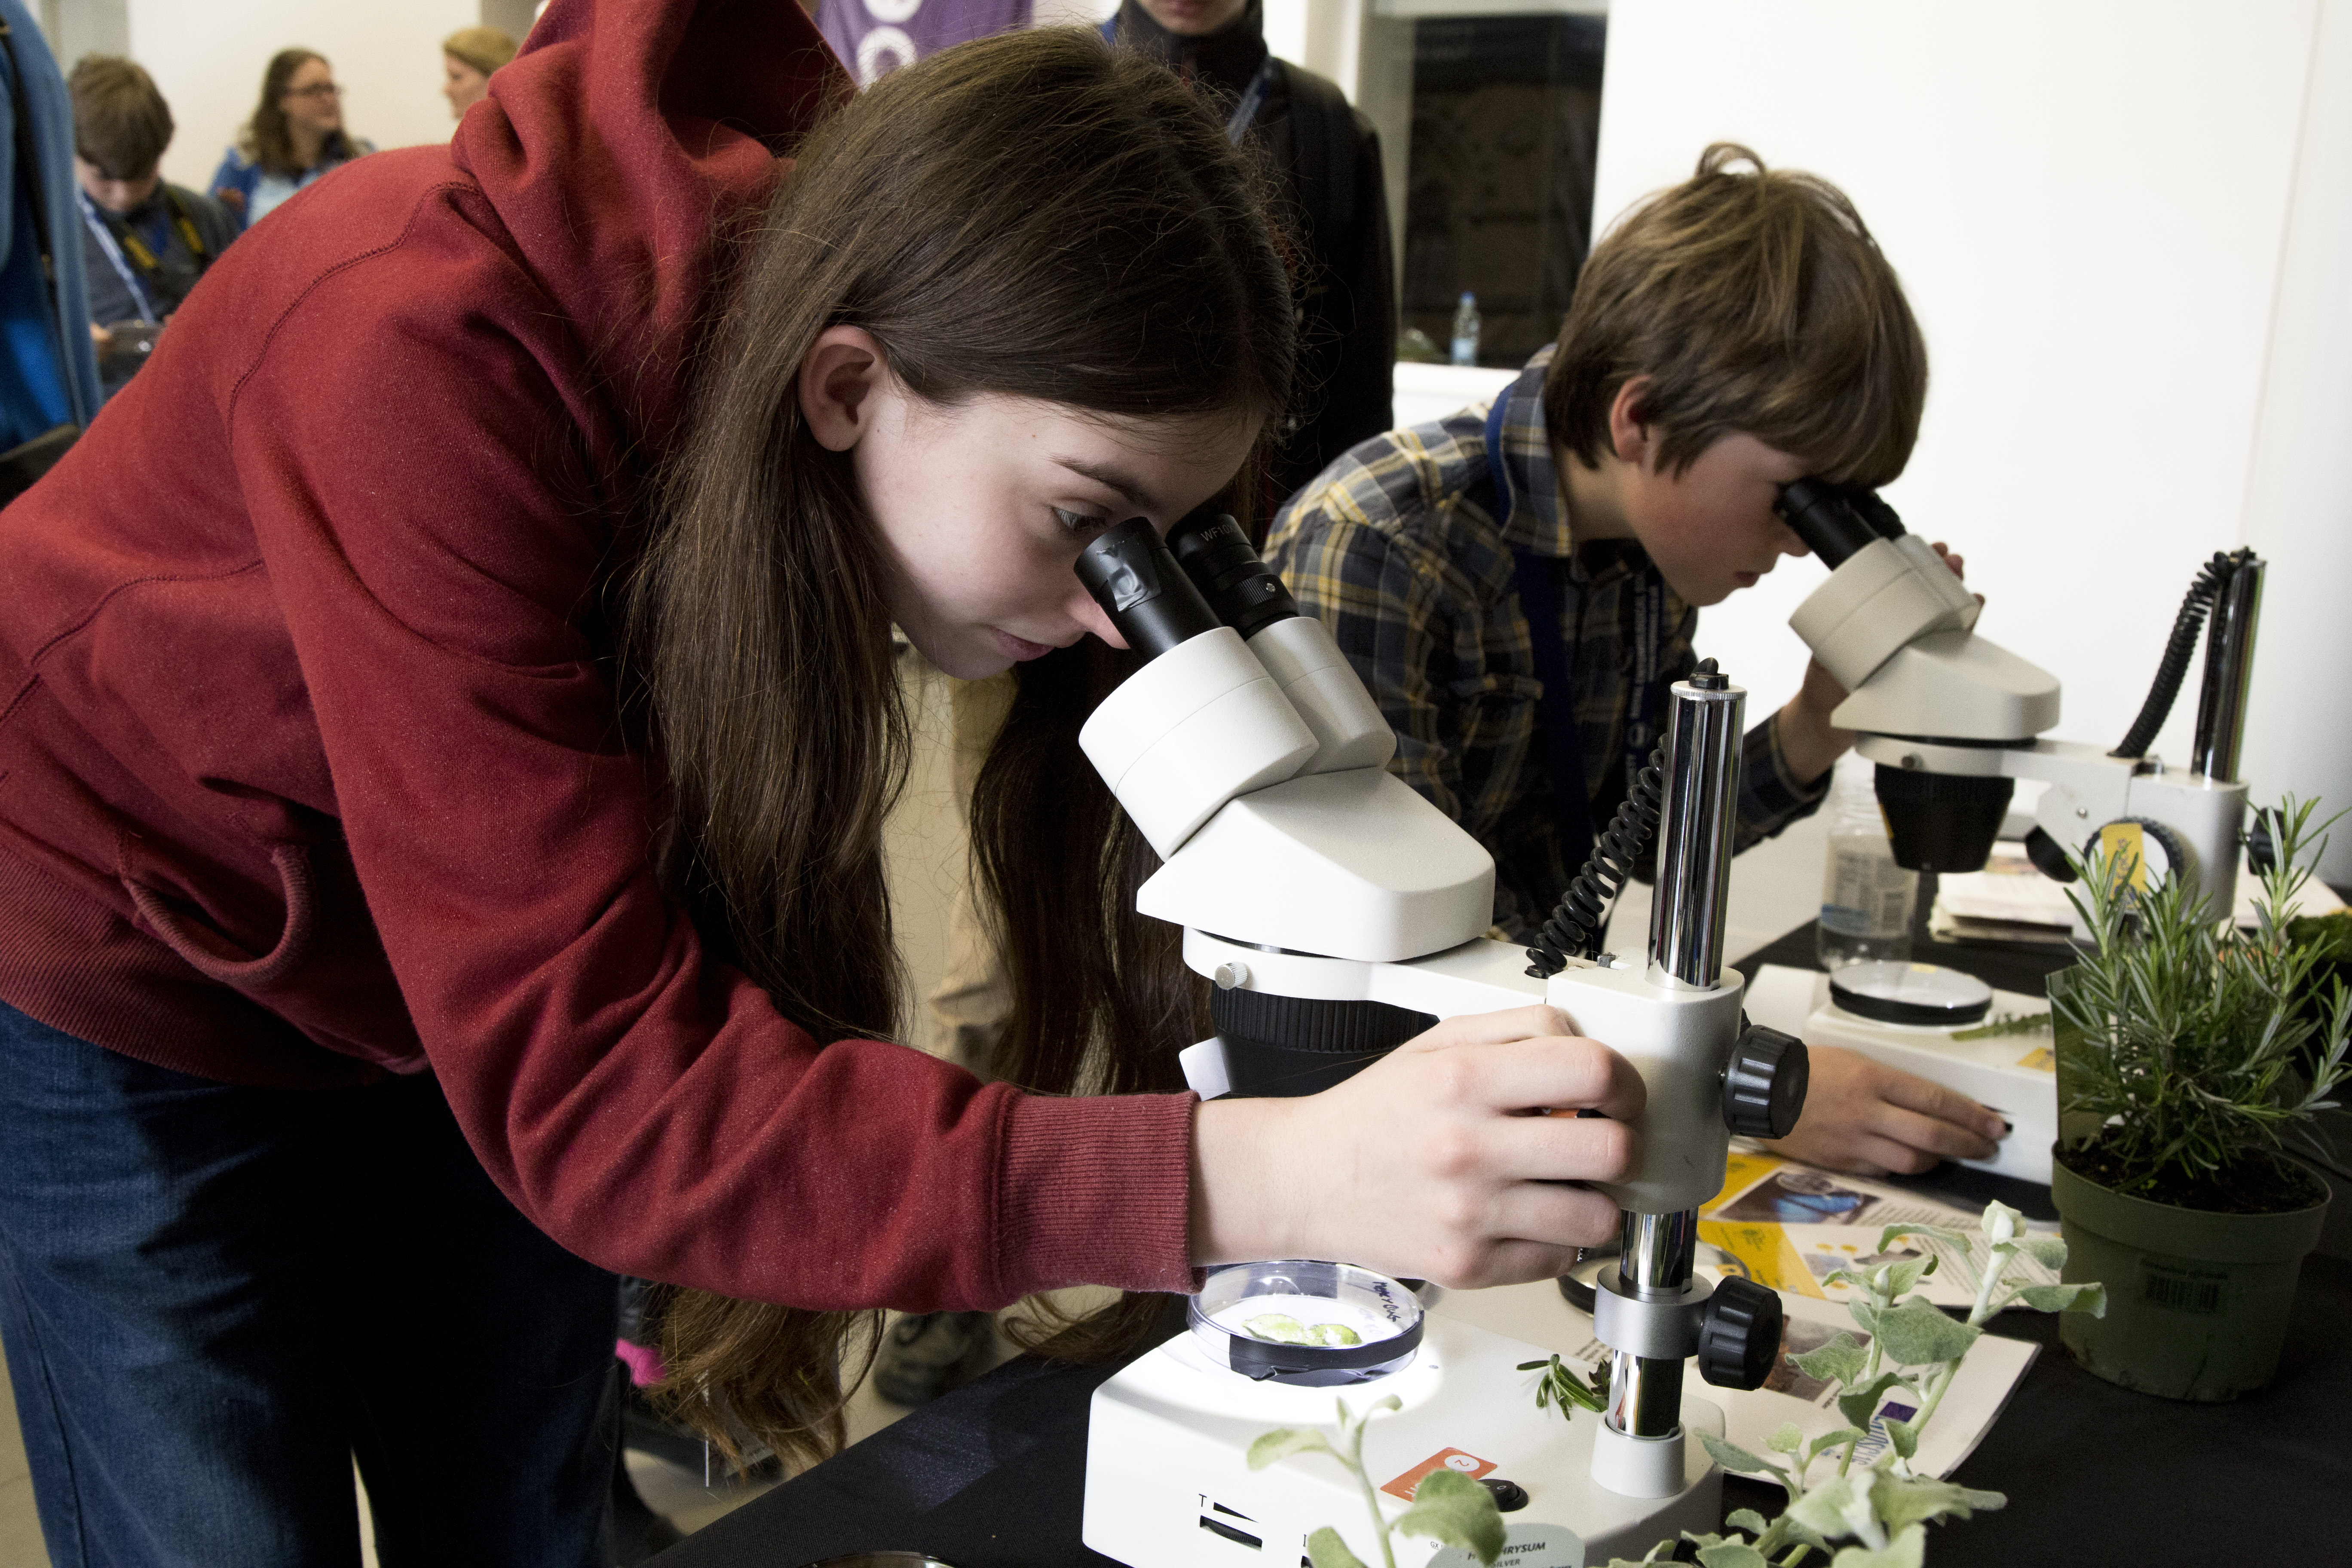 Girl and boy looking at specimens under microscopes